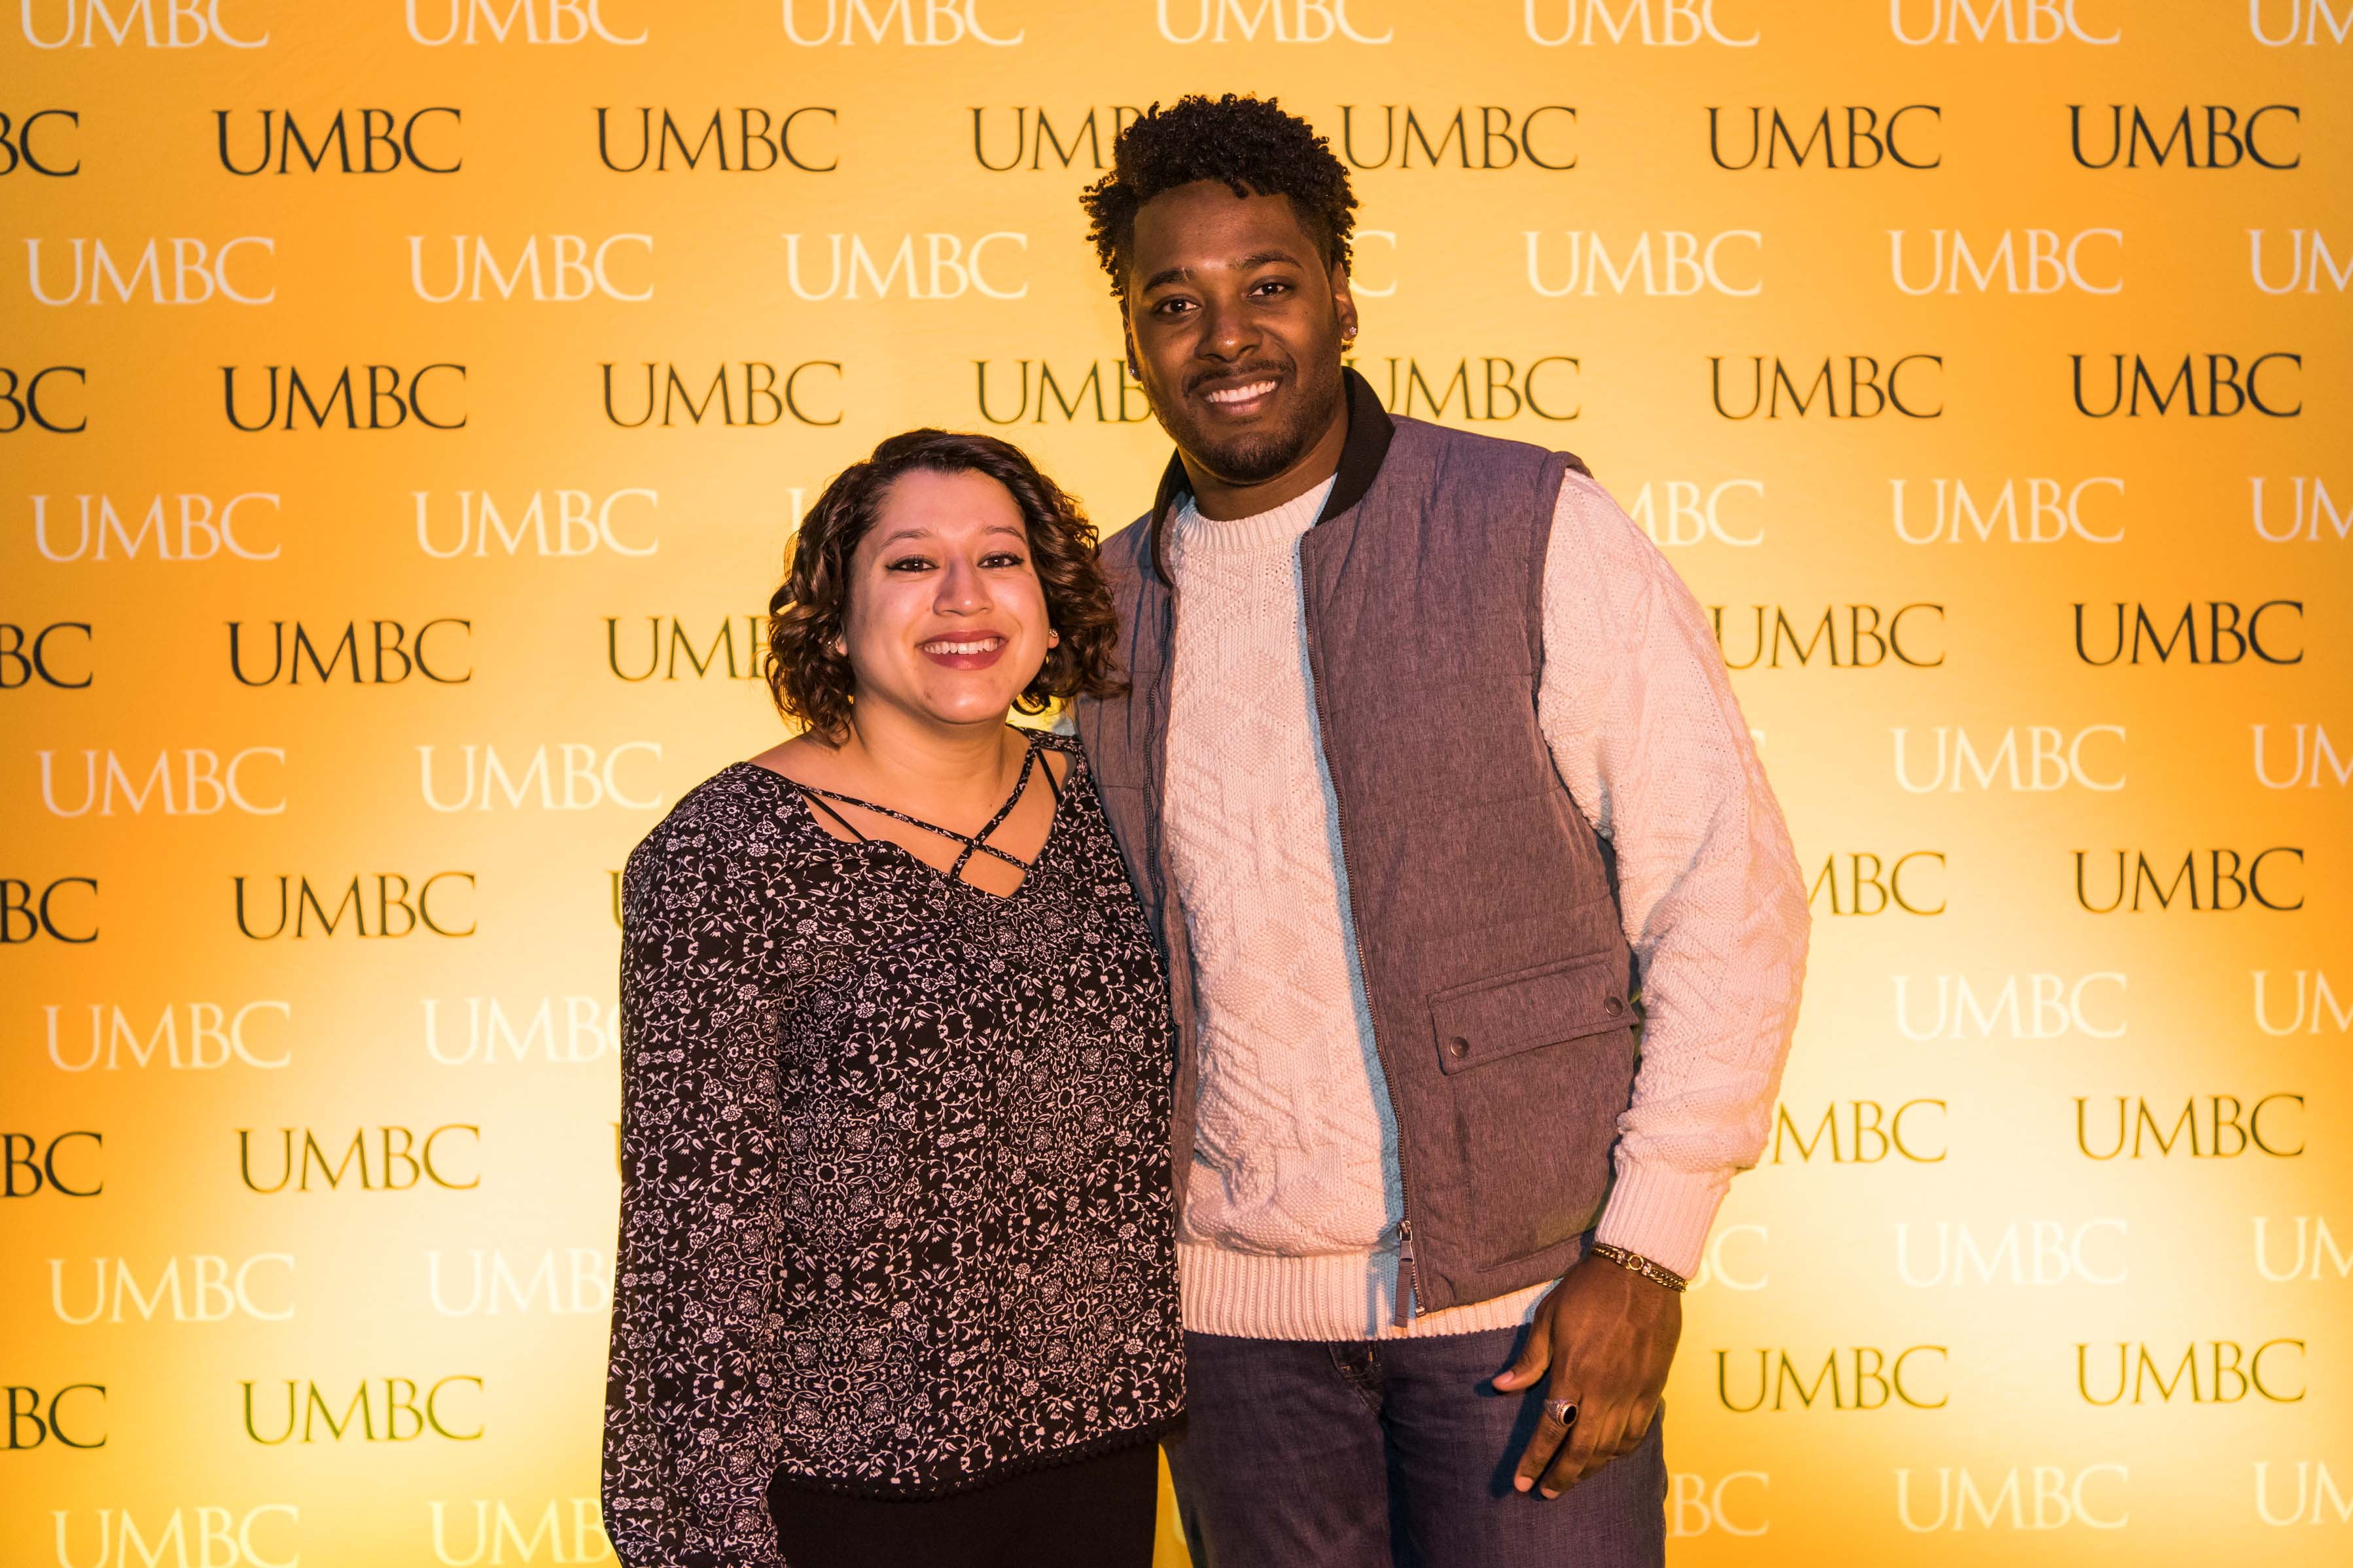 Man and woman pose in front of UMBC wall at Pier 5 reception